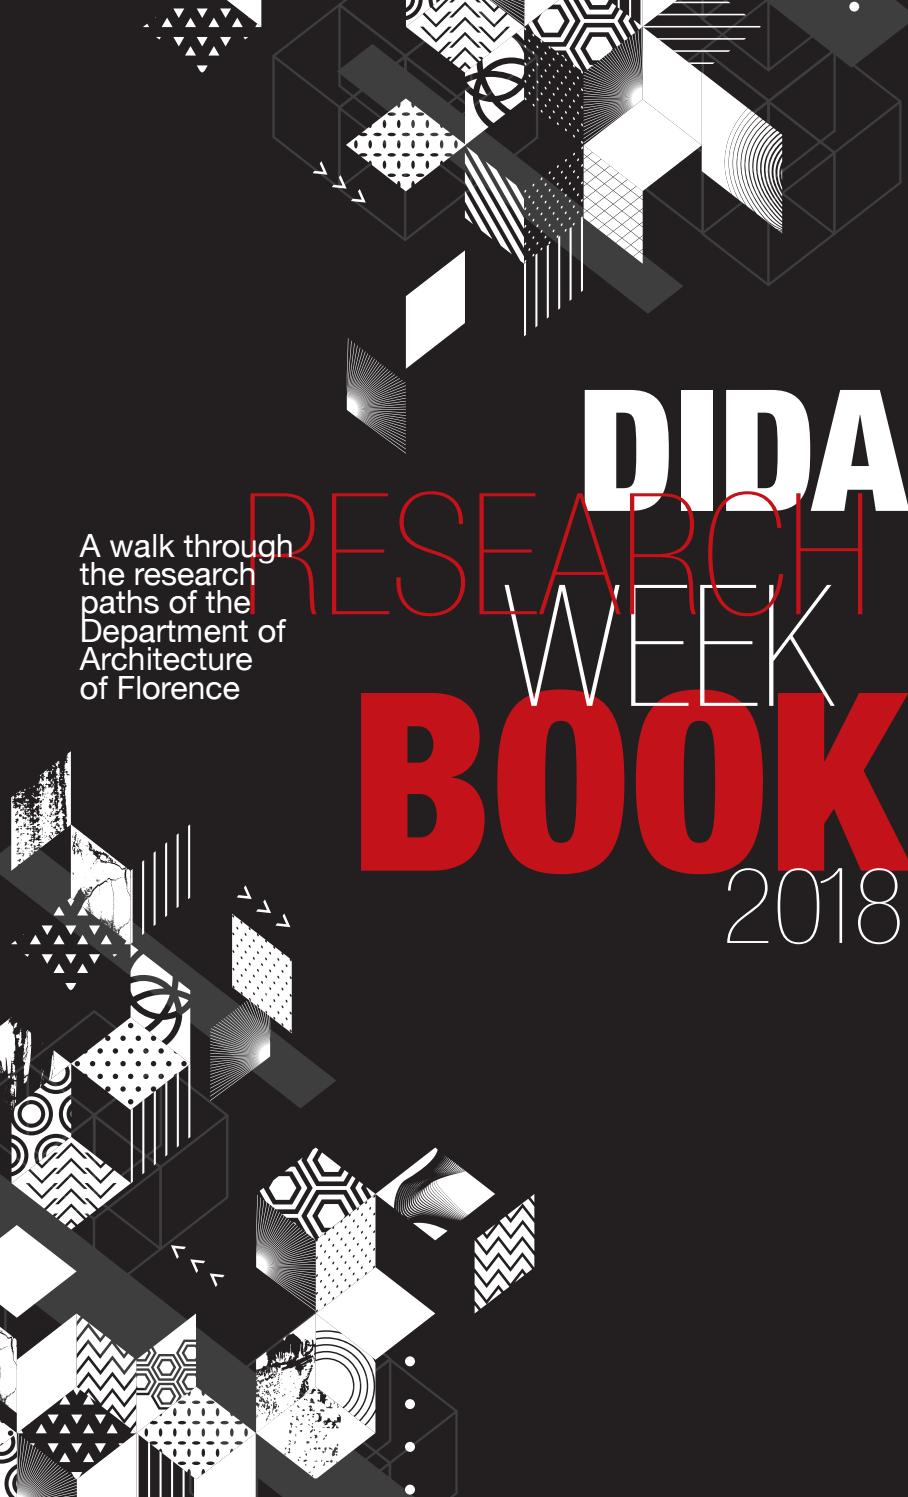 Fire Design Bagno A Ripoli Dida Research Week Book By Dida Issuu